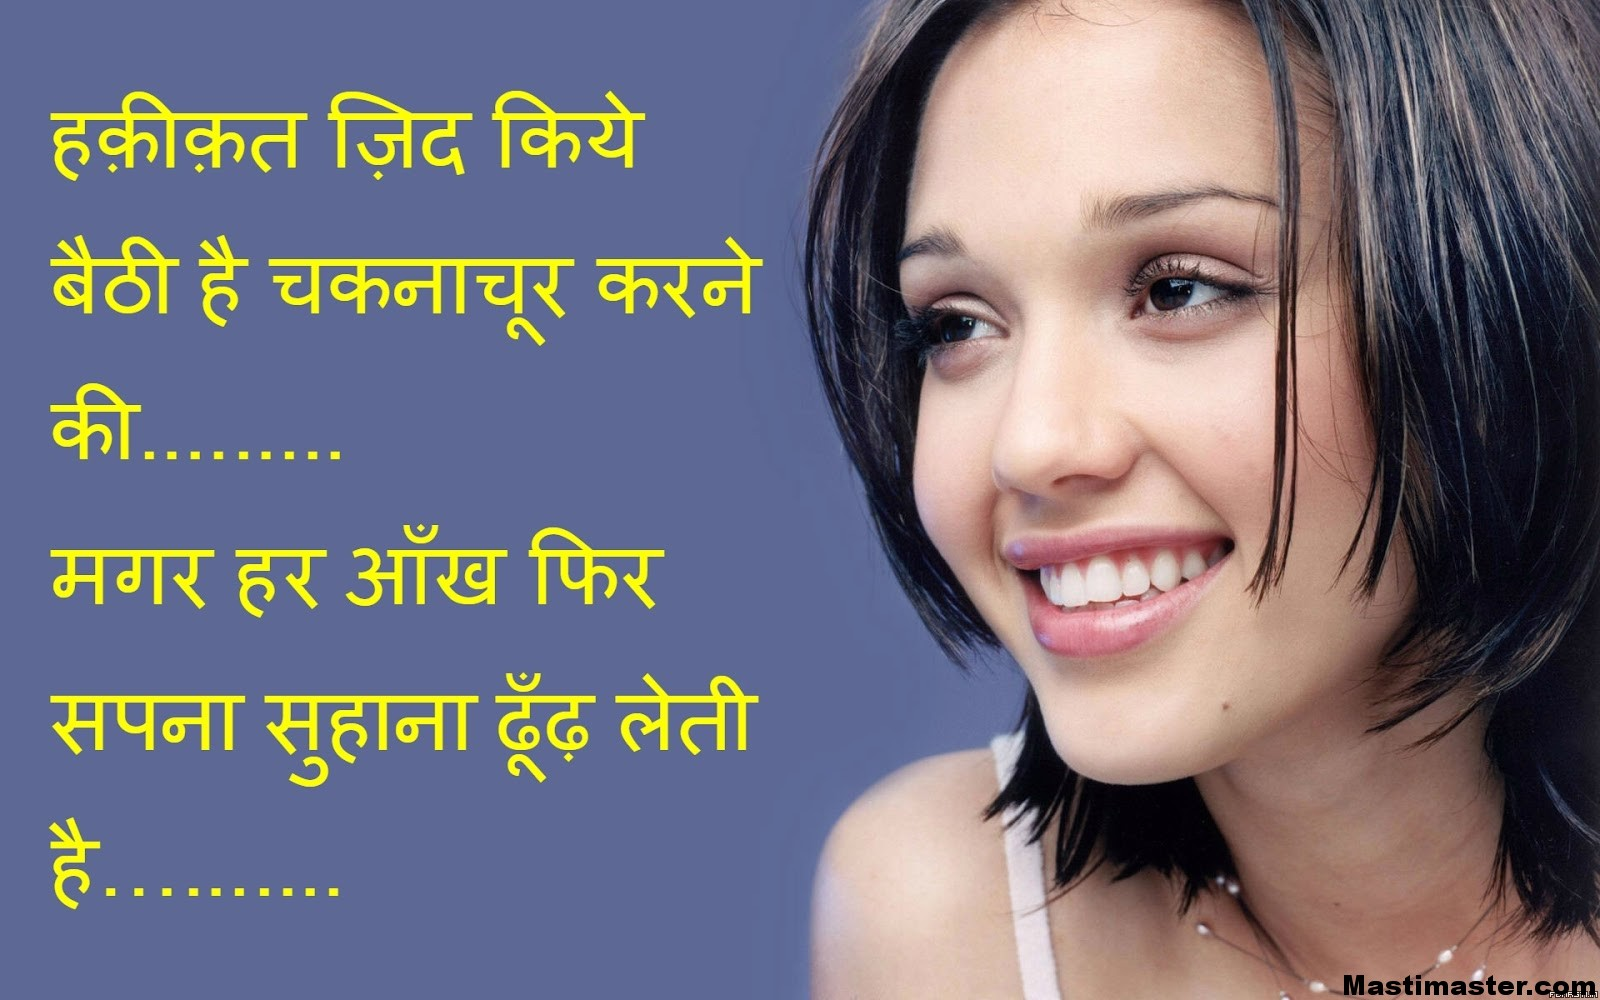 Facebook Sad Shayari Picture